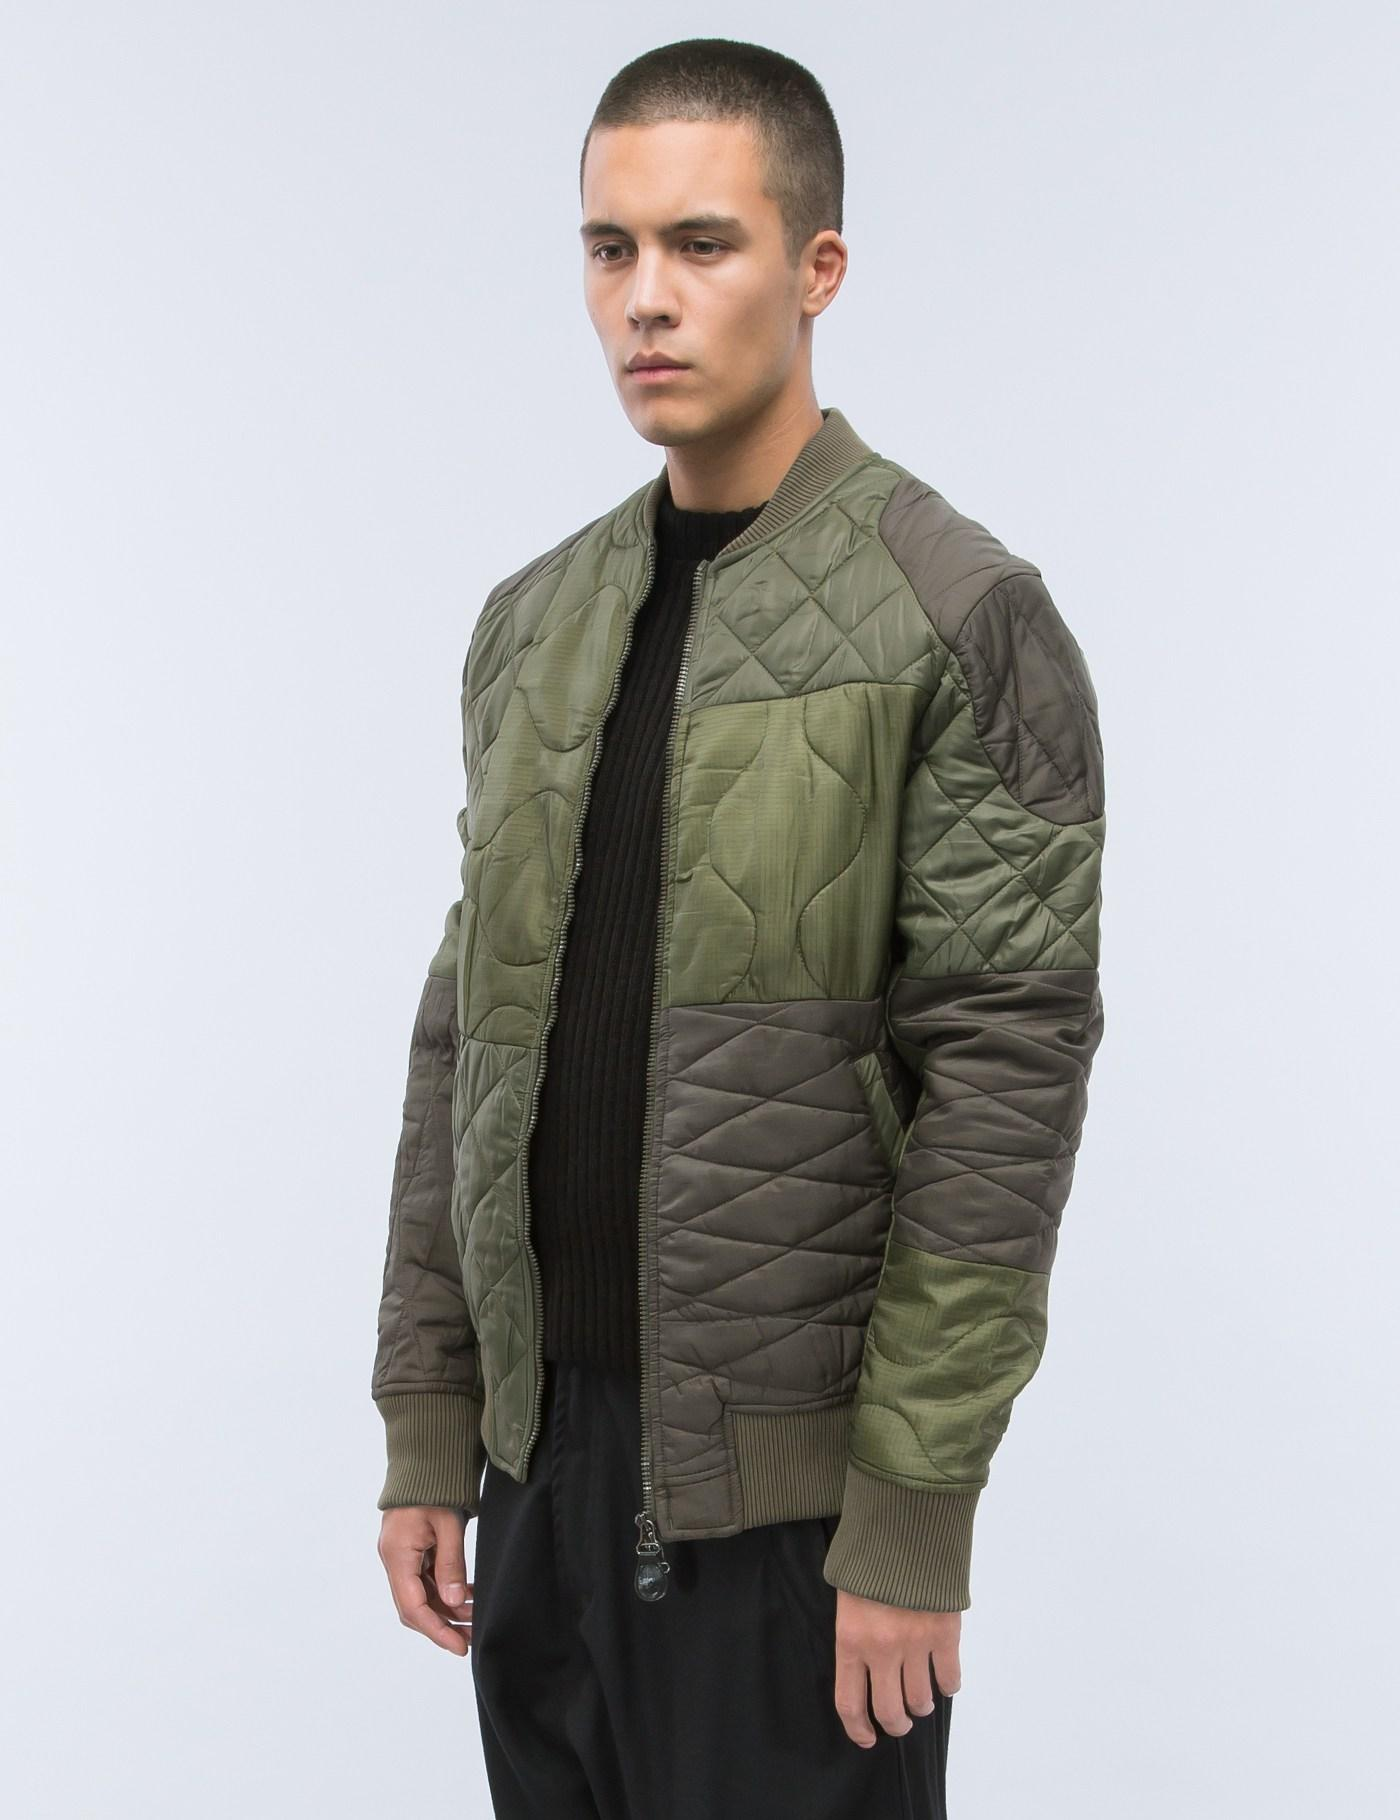 Maharishi Upcycled Liner Bomber Jacket in Brown for Men